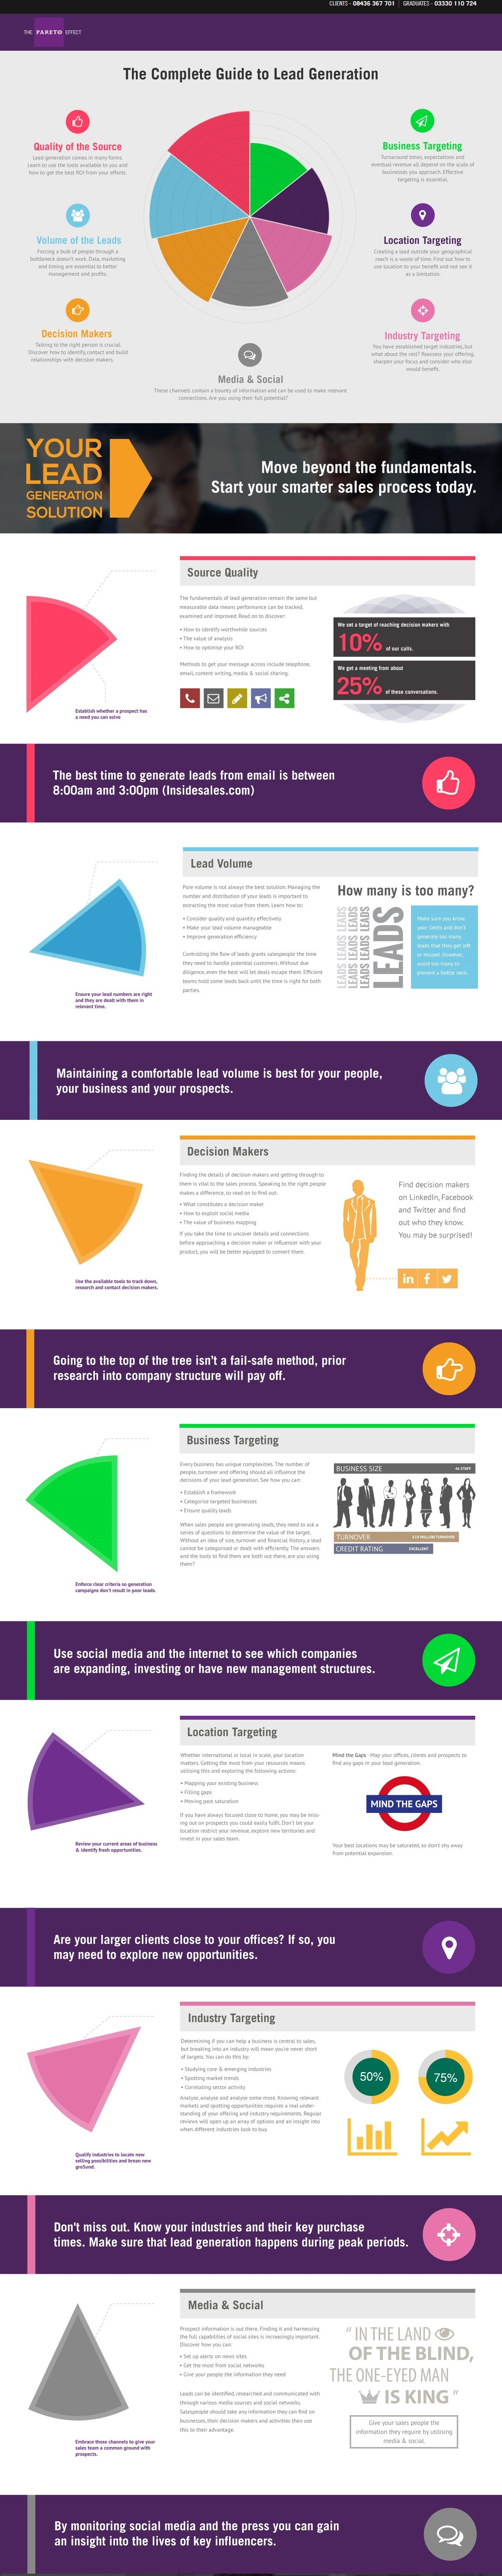 The Seven Vital Components of Lead Generation [Infographic] - Profs